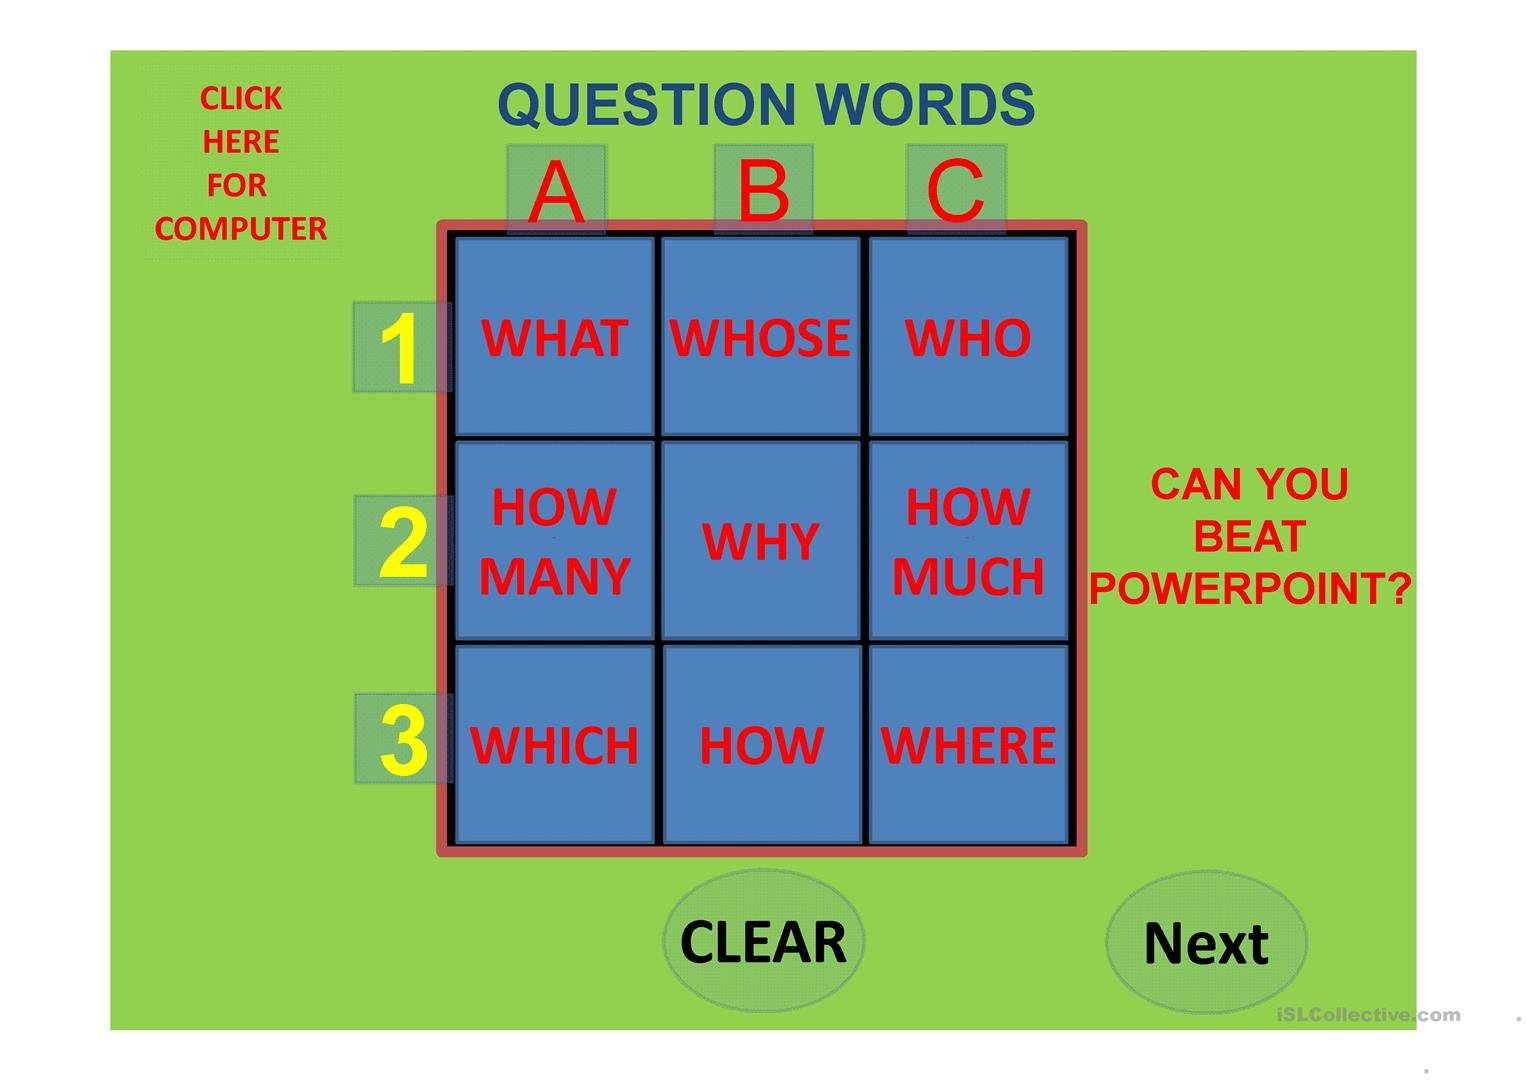 Question Words Tic Tac Toe Against The Computer Part 2